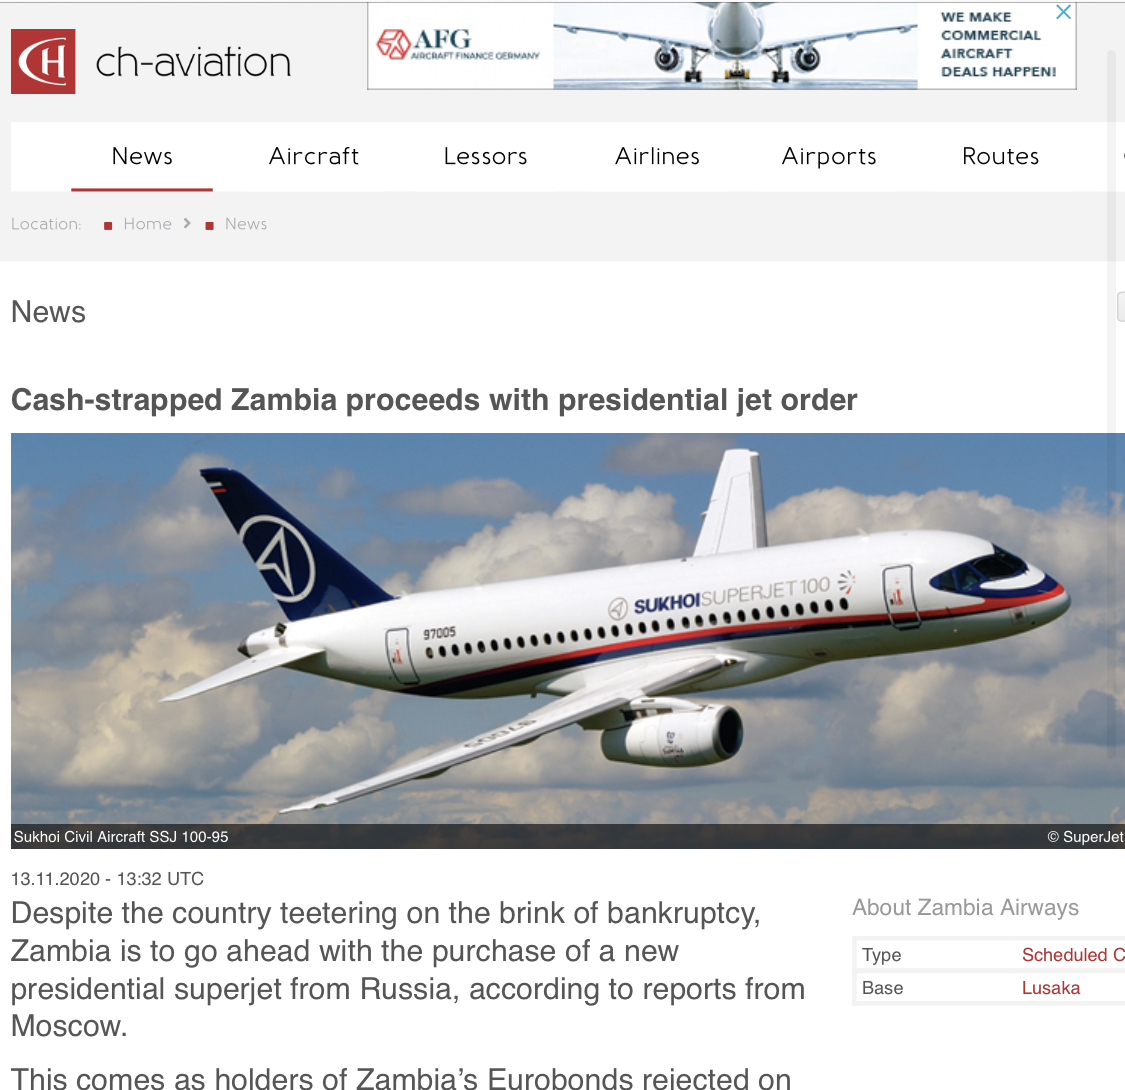 Cash-strapped Zambia proceeds with presidential jet or